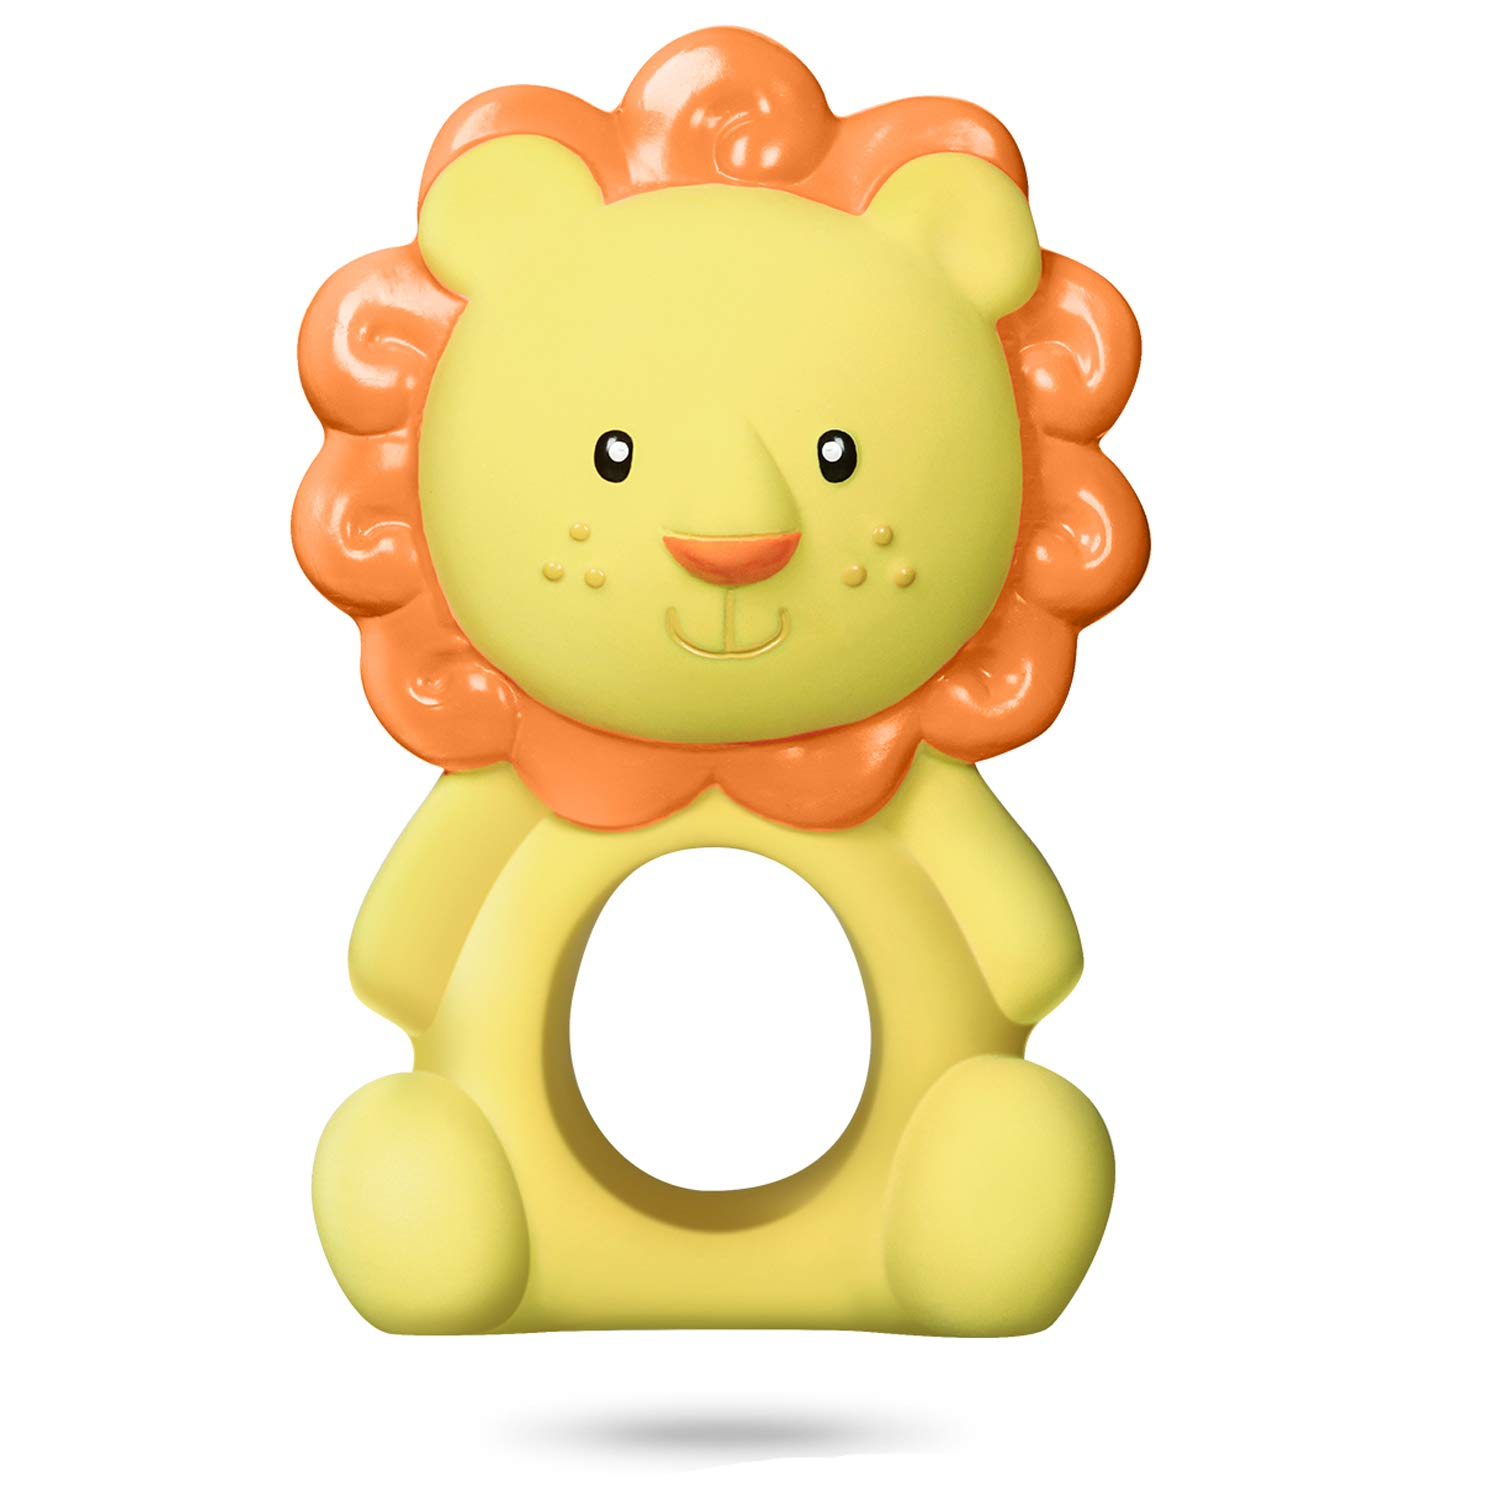 CALLMYBO Cute Lion Teether Teething Toy, Lion Toy for Baby BPA-Free Silicone Free Teething Toys 100% Natural Rubber Teether, Freezable and Dishwasher-Safe